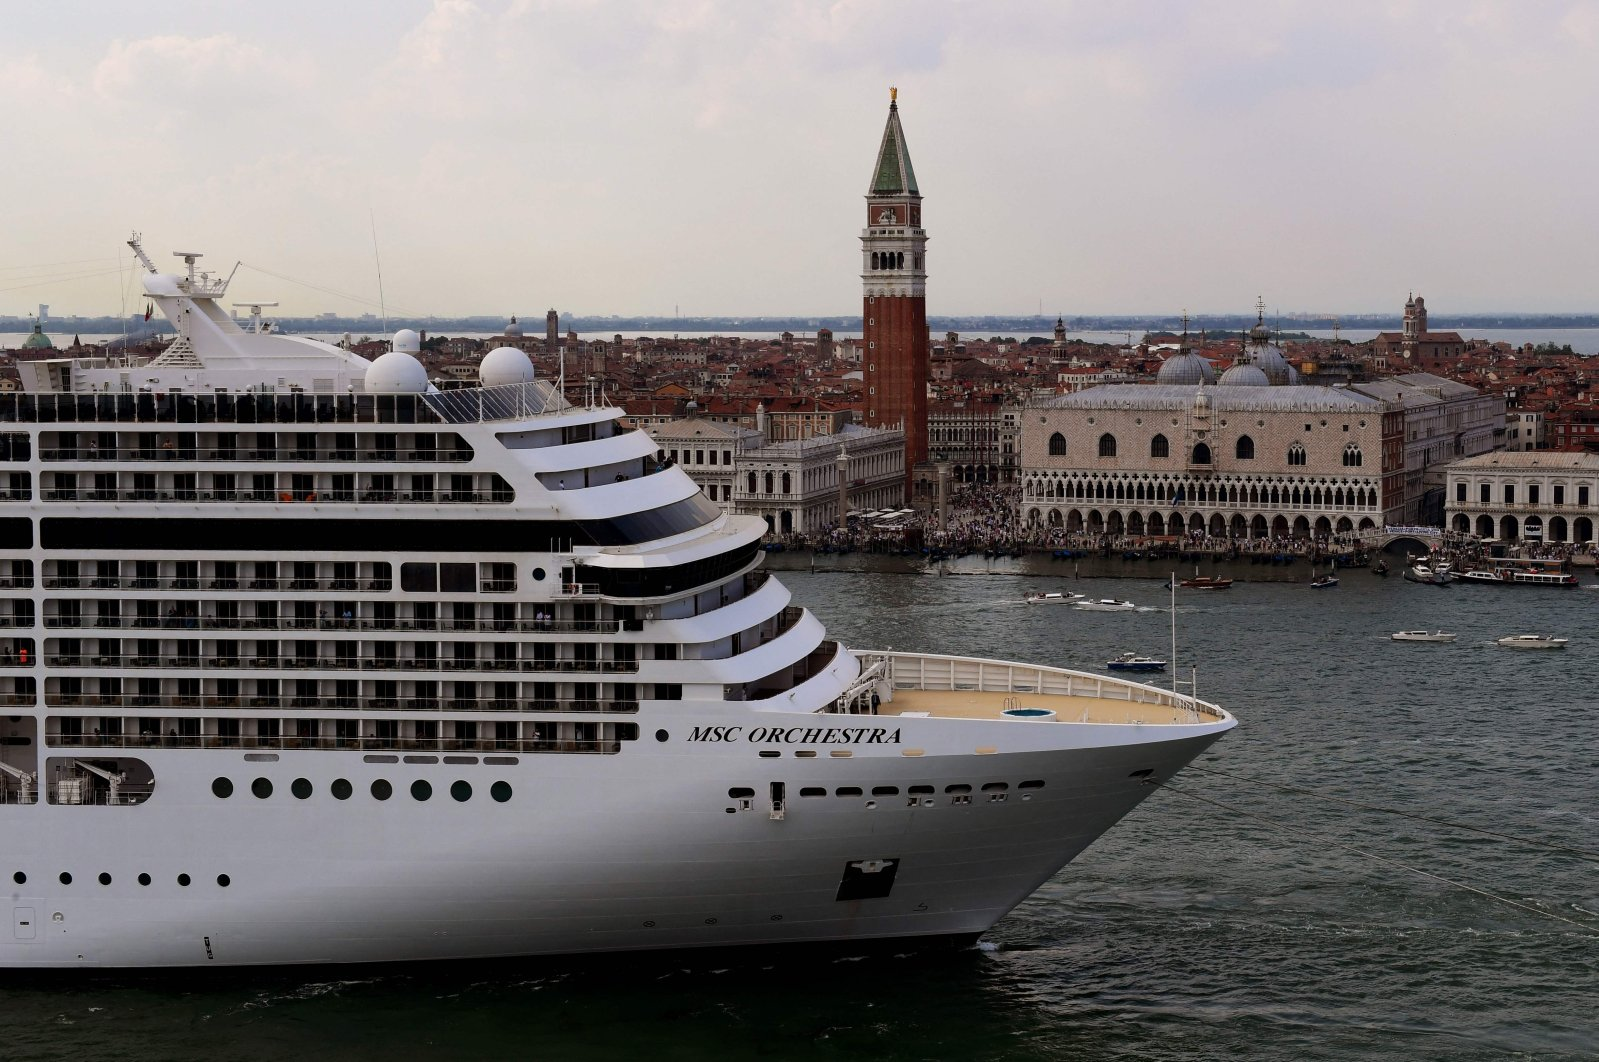 Tugboats escort the MSC Orchestra cruise ship across the basin past the Bell Tower and the Doge's palace as it leaves Venice, Italy, June 5, 2021. (AFP Photo)